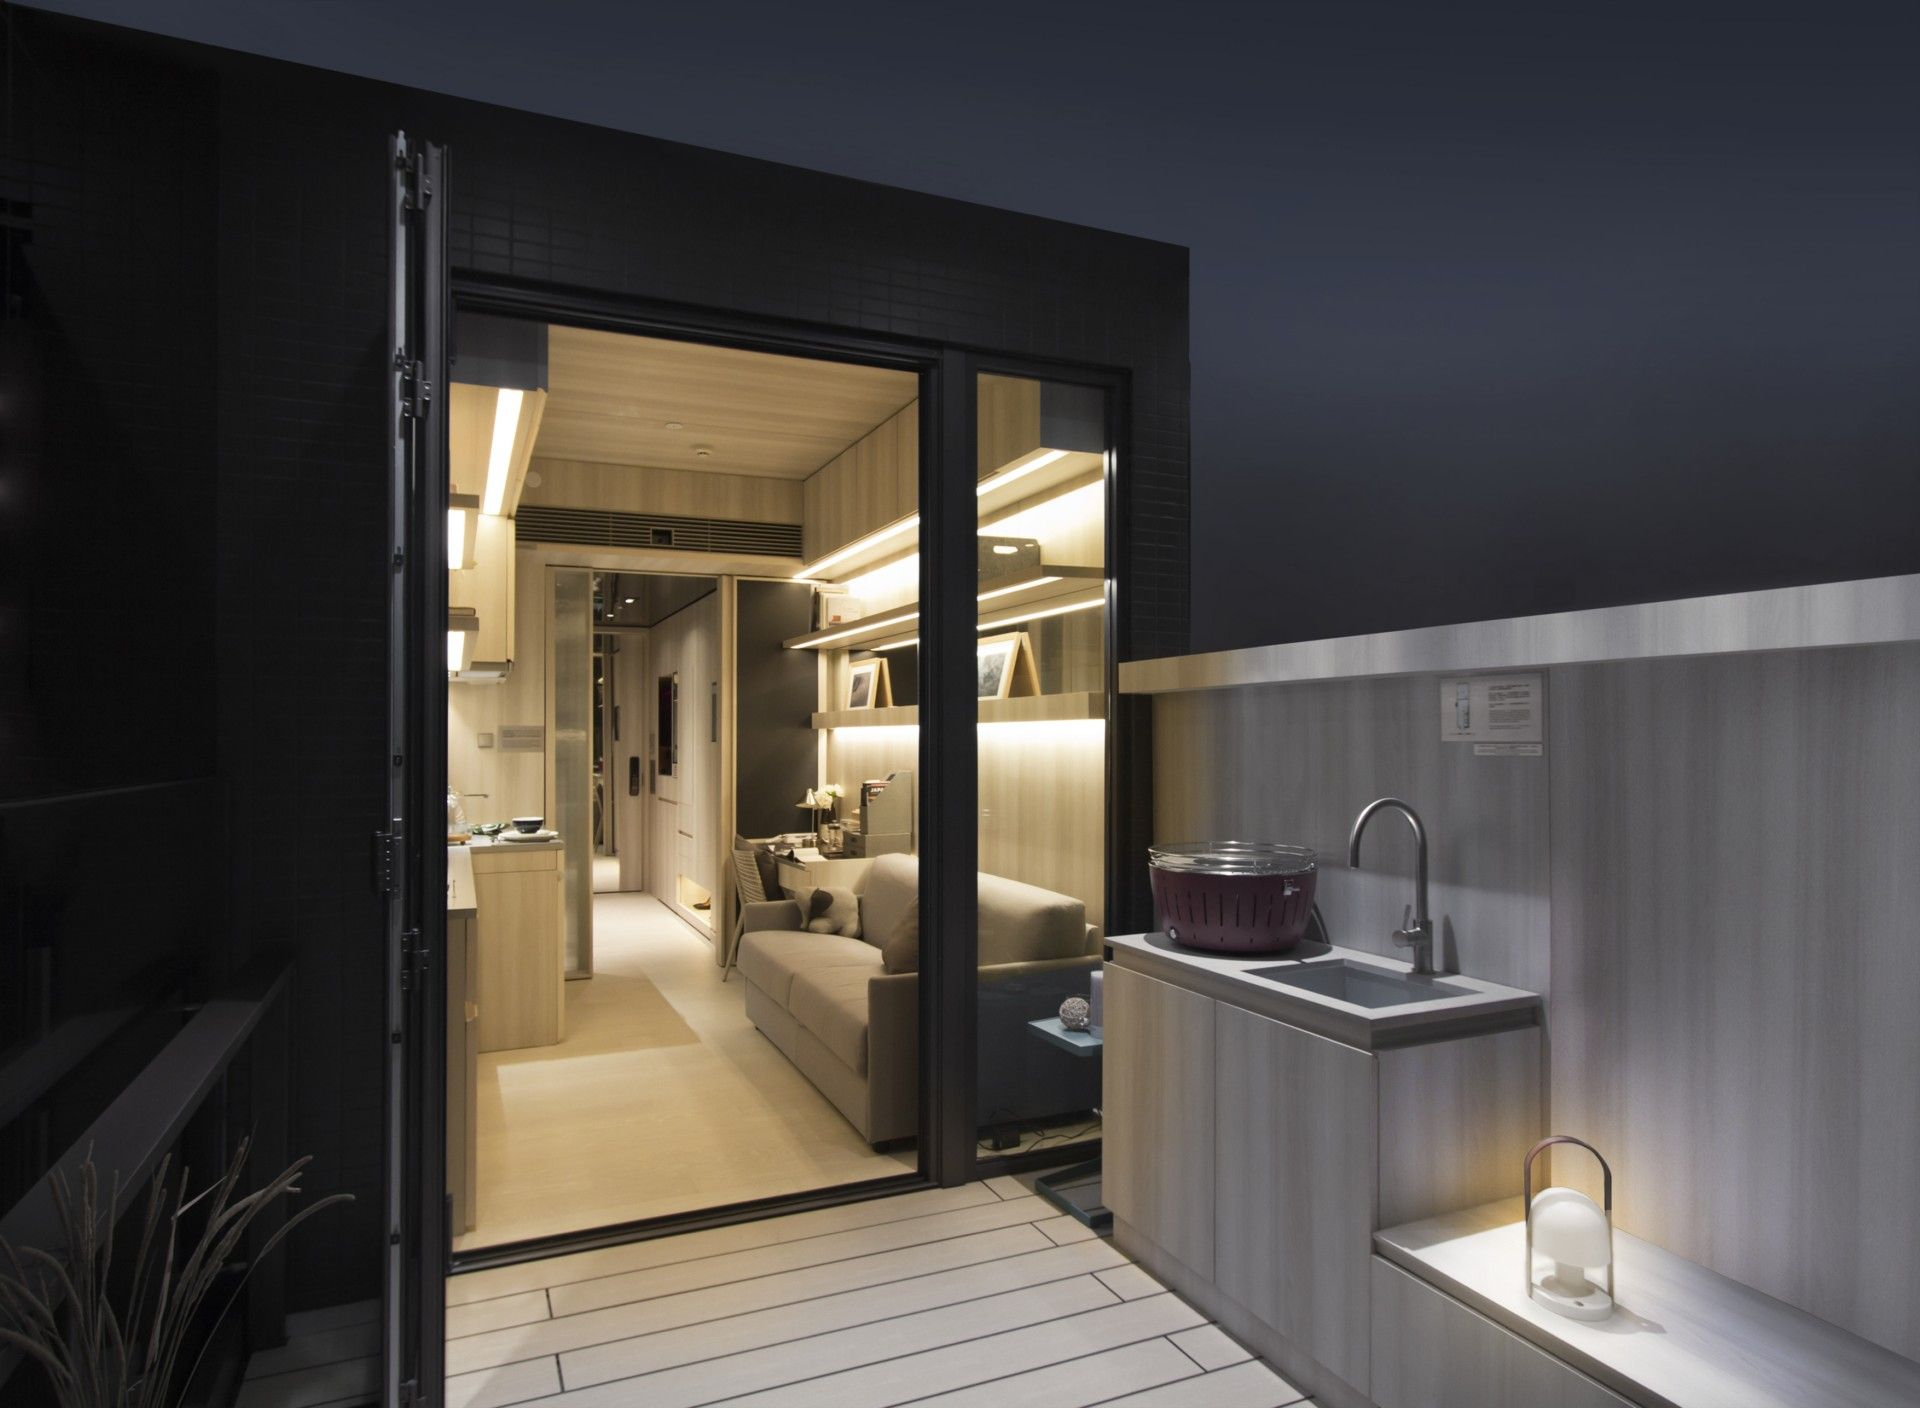 Private Housing Interior Design Category 18sqm Compact Apartment In Hong Kong